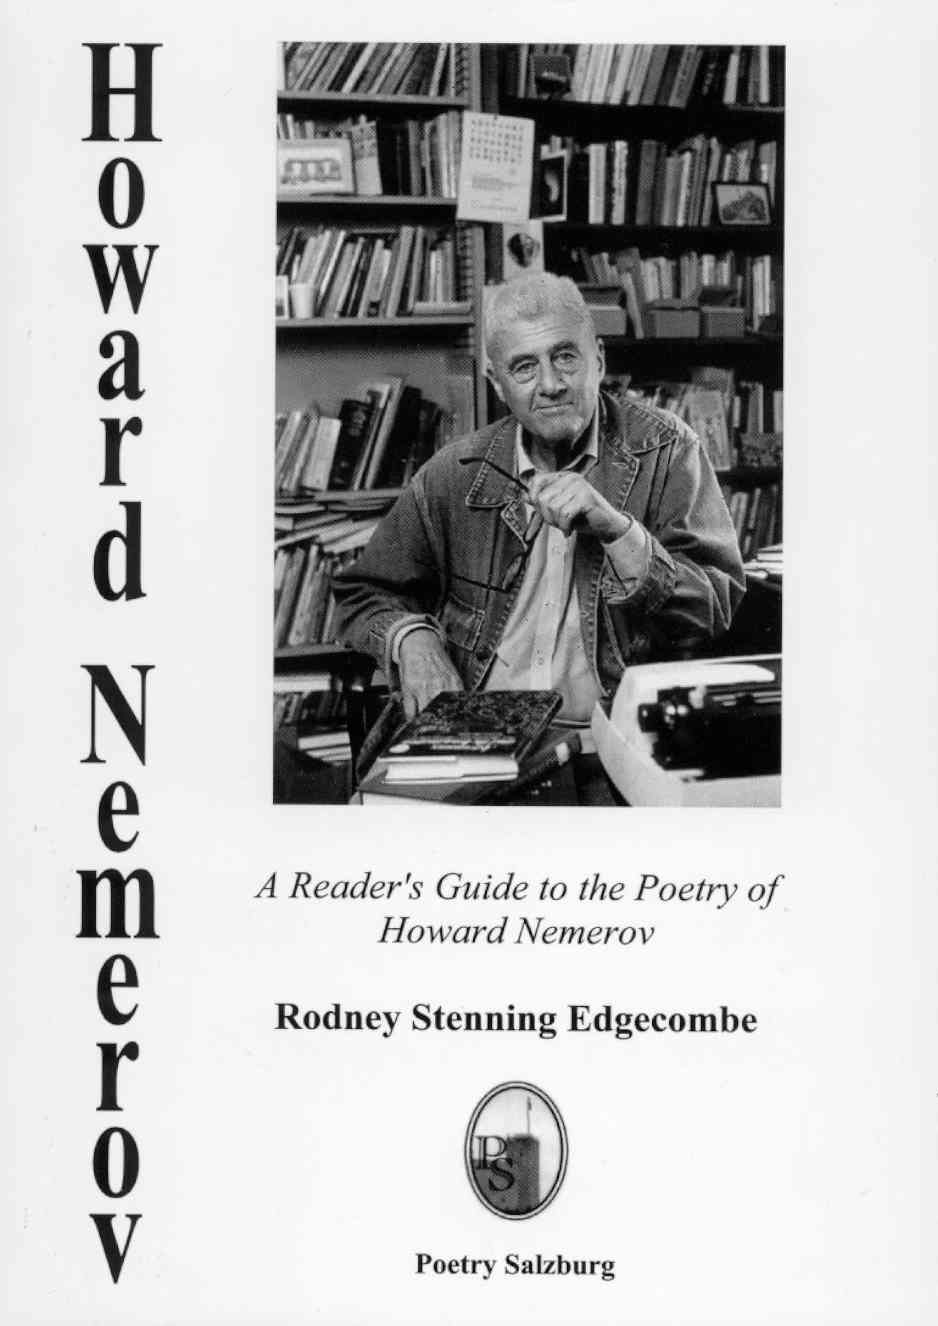 an analysis of the poem lobsters by howard nemerov